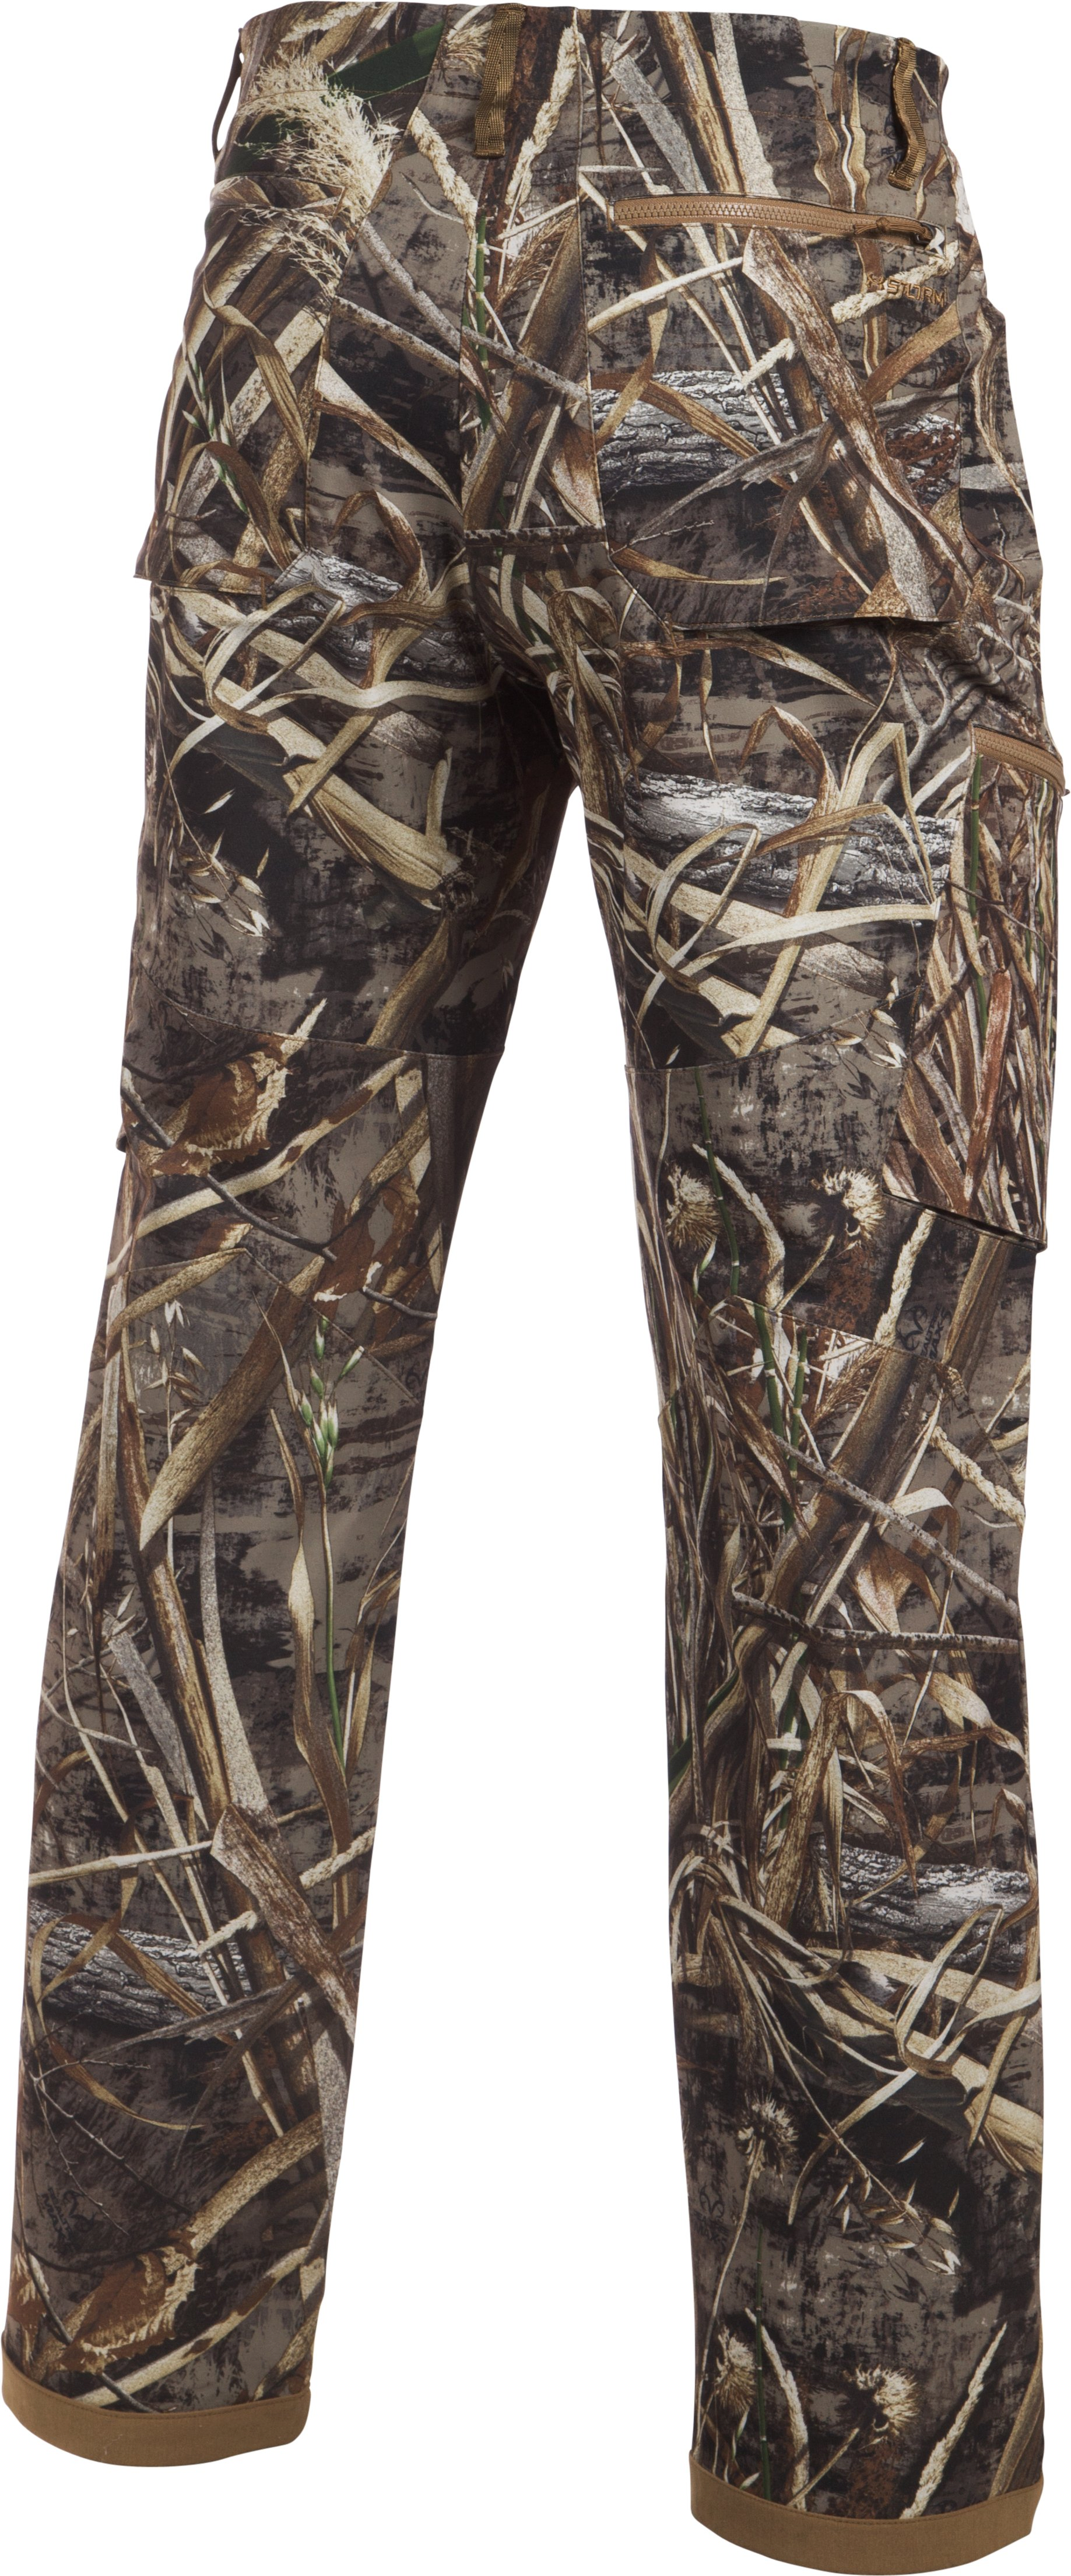 Men's UA Deadload Camo Field Pants, REALTREE MAX 5,